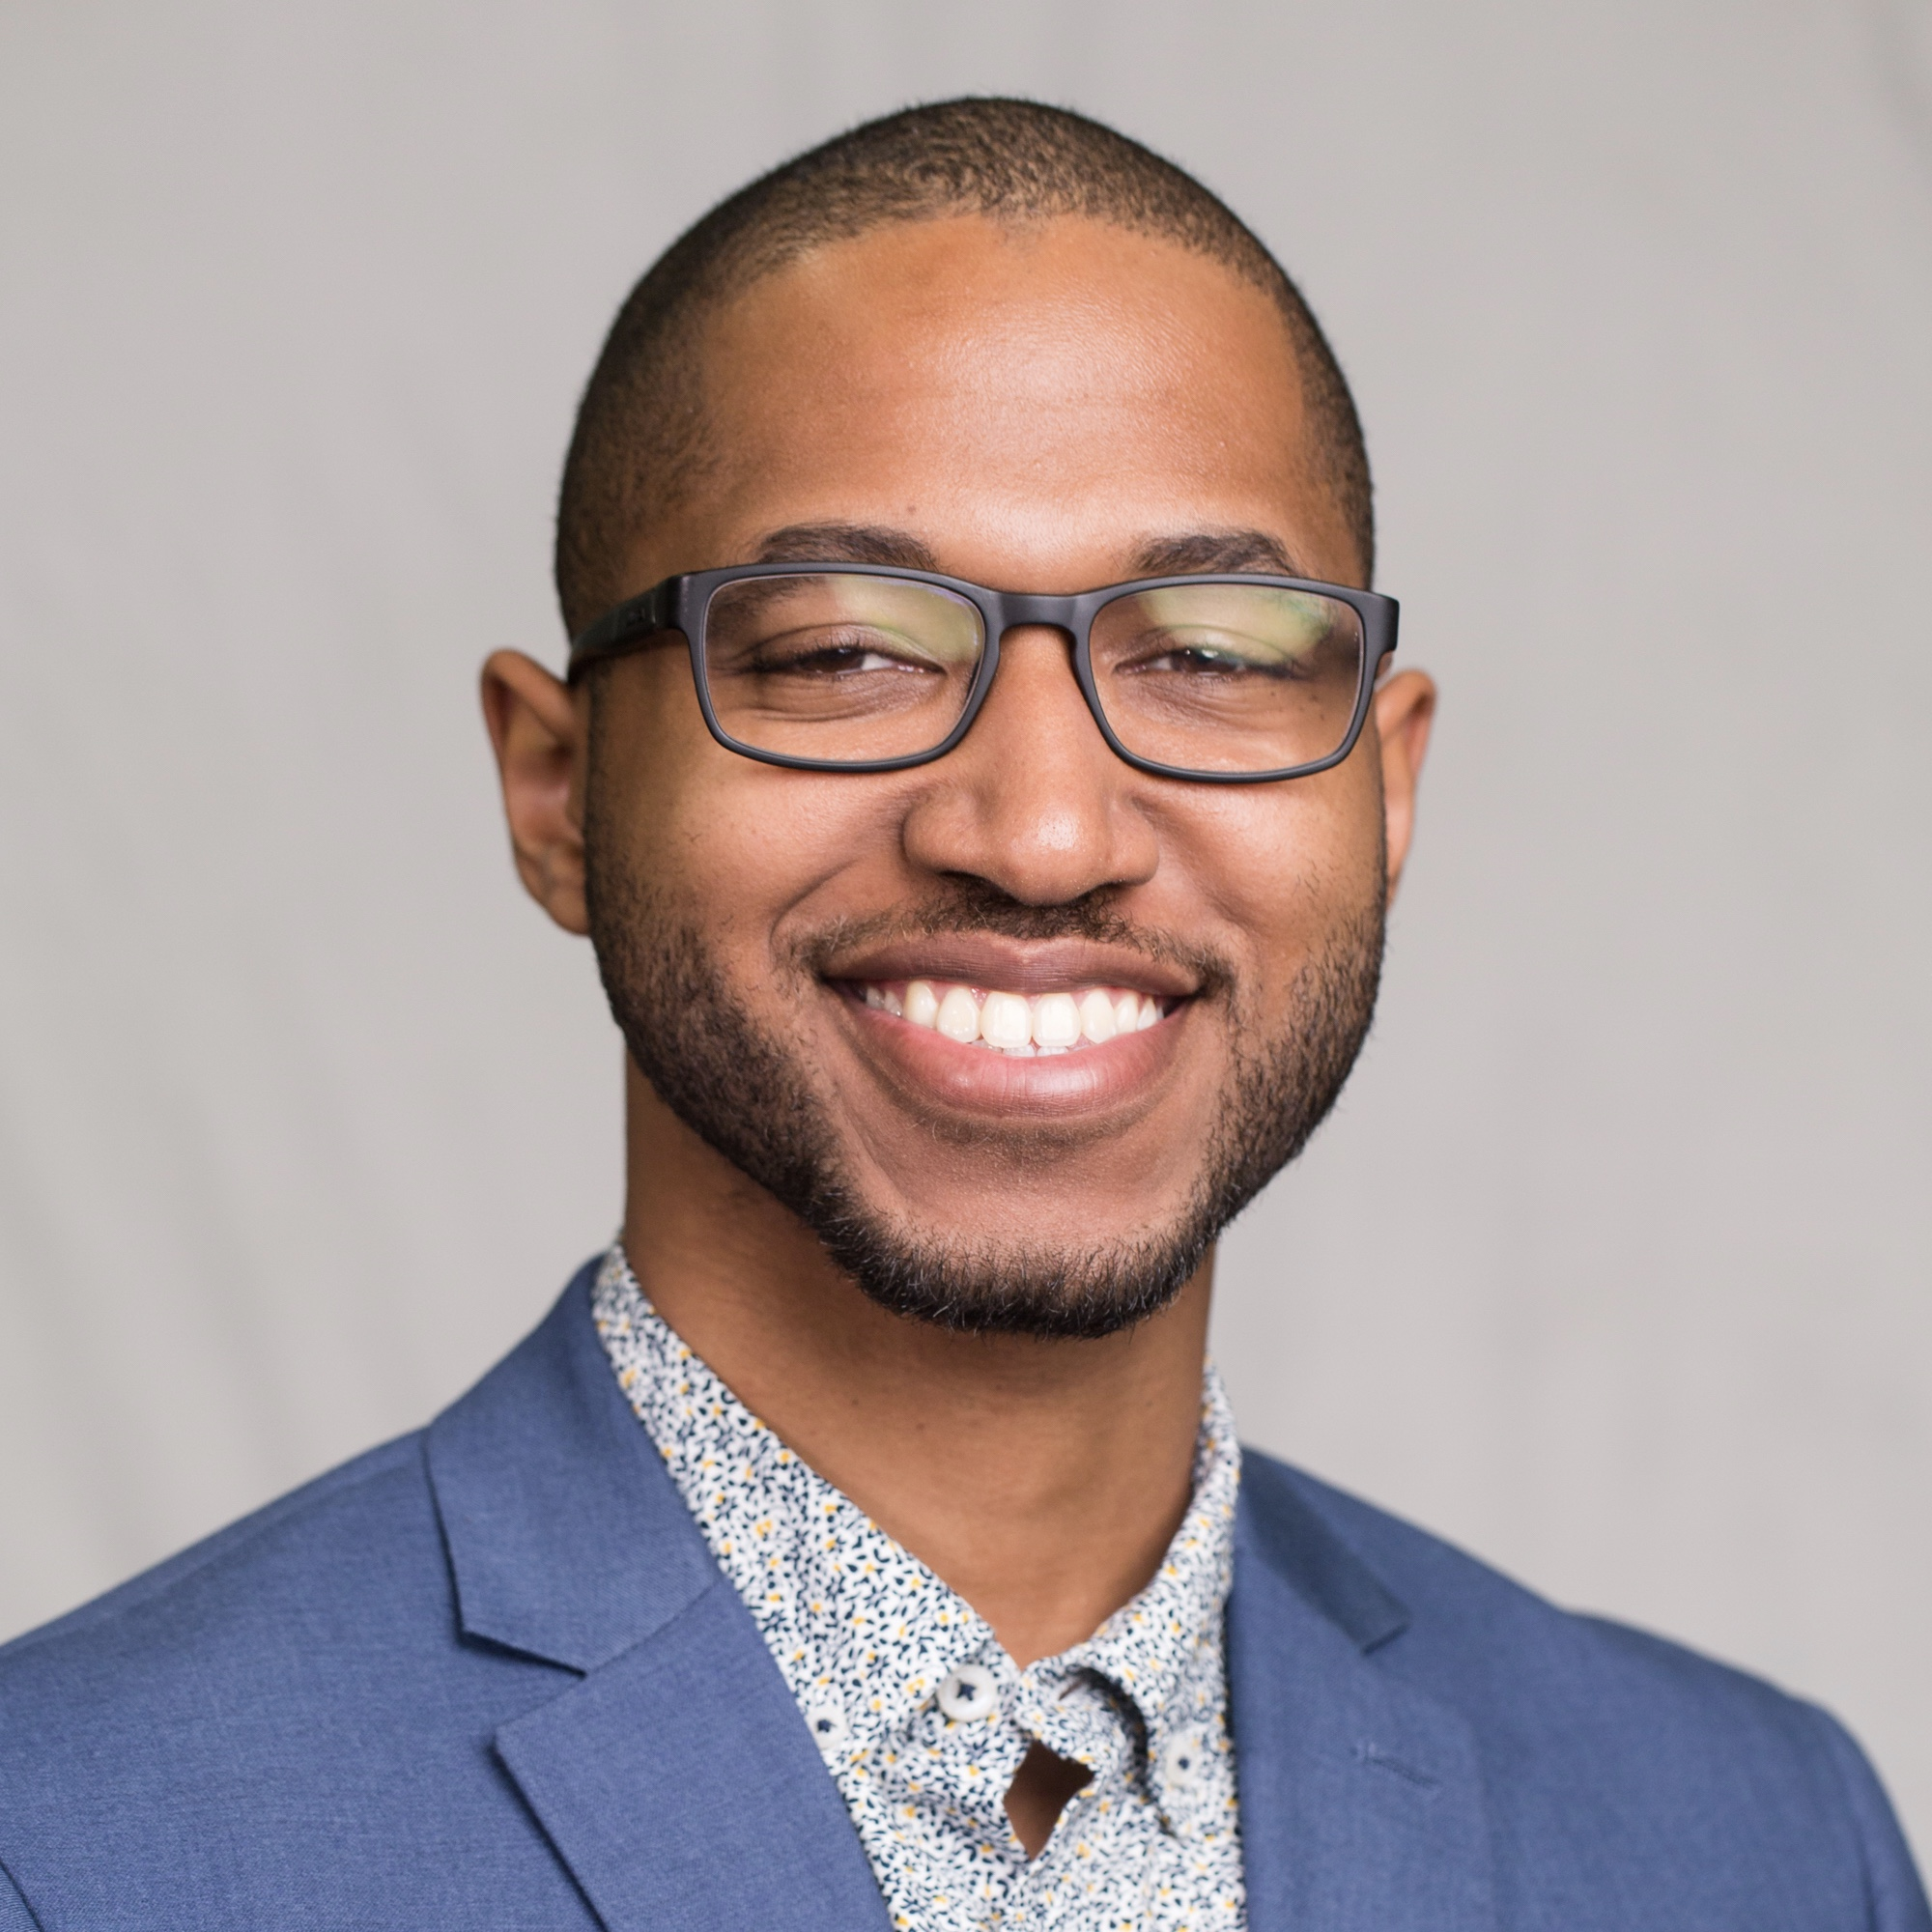 Gerald D. Higginbotham, M.A., does research with CSS and is now working towards his PhD as a graduate student at UCLA in Social Psychology.